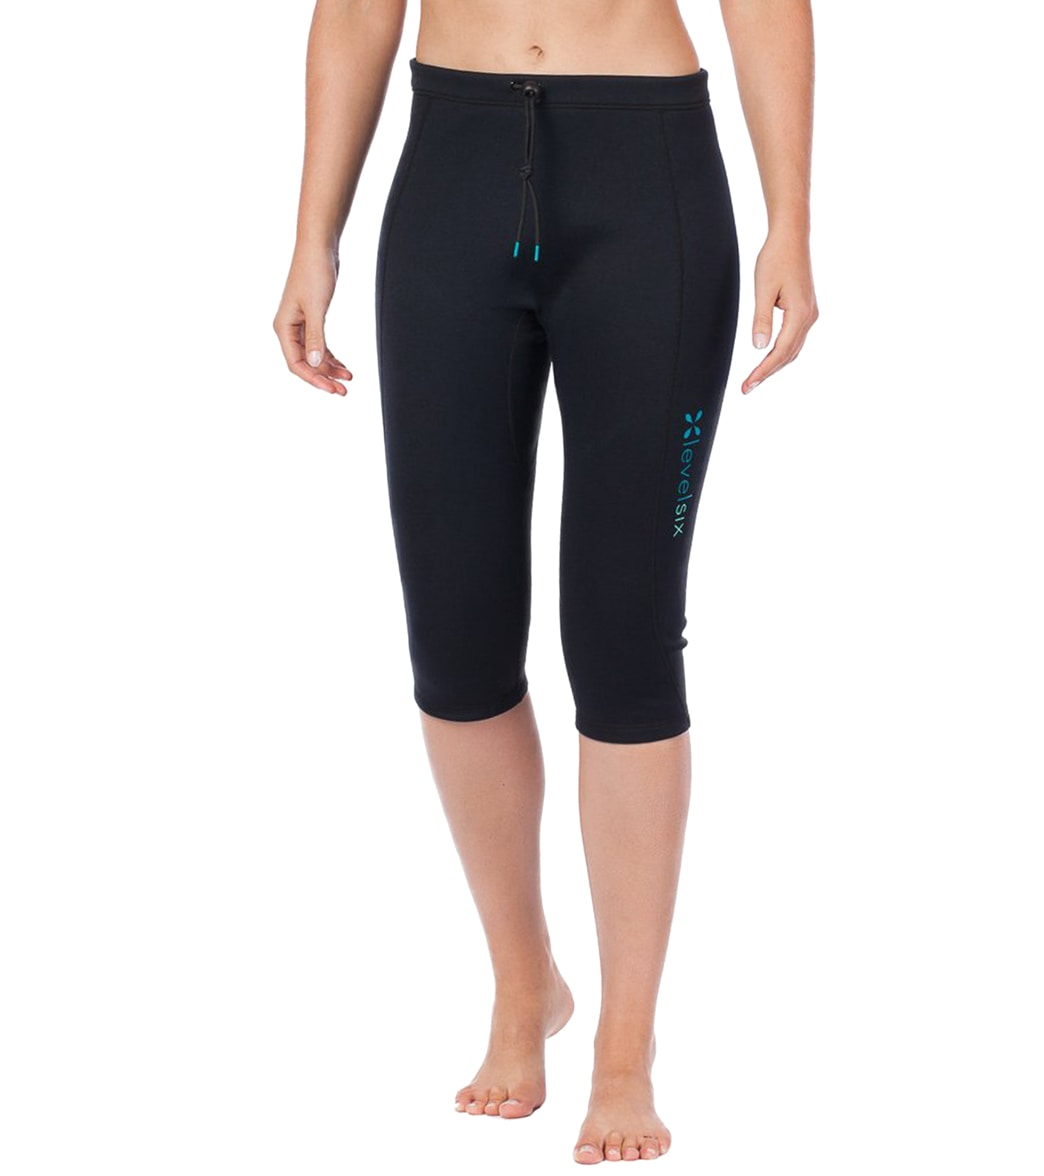 73ca7792a67e9 Level Six Women's 0.5MM Convection Neoprene Wetsuit Capri Pant at  SwimOutlet.com - Free Shipping